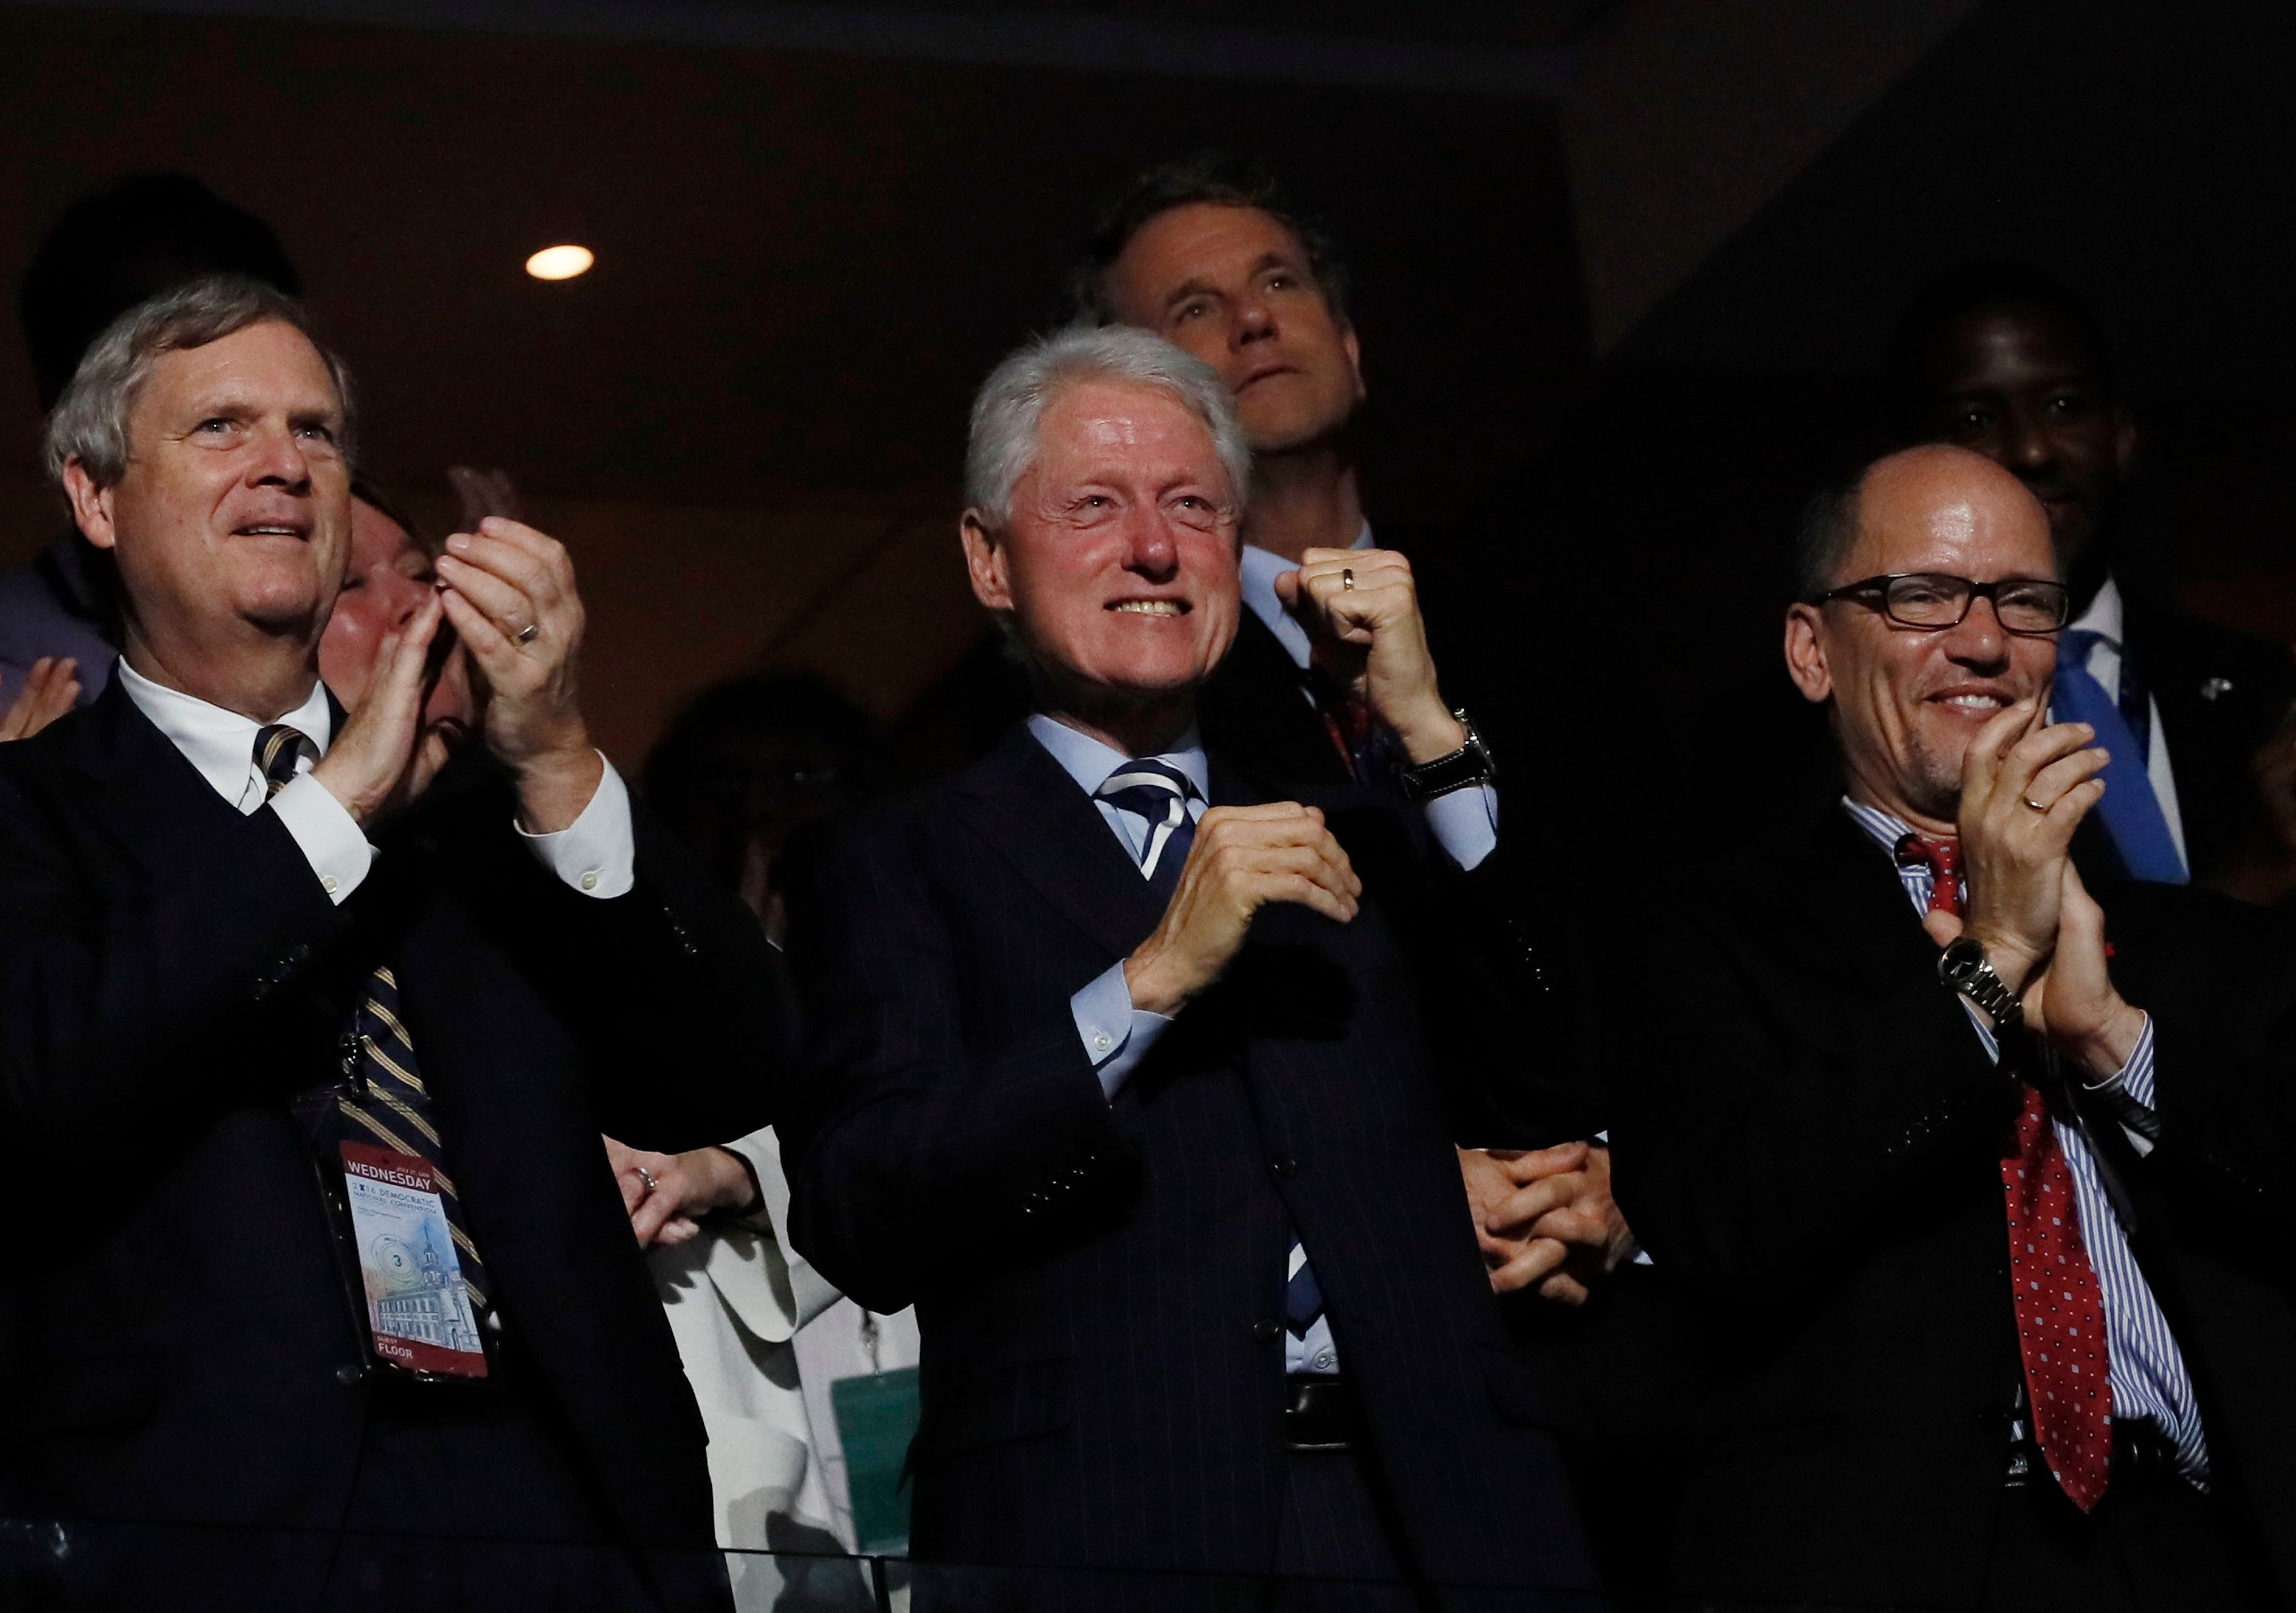 Former President Bill Clinton could become the country's first gentleman in the White House.